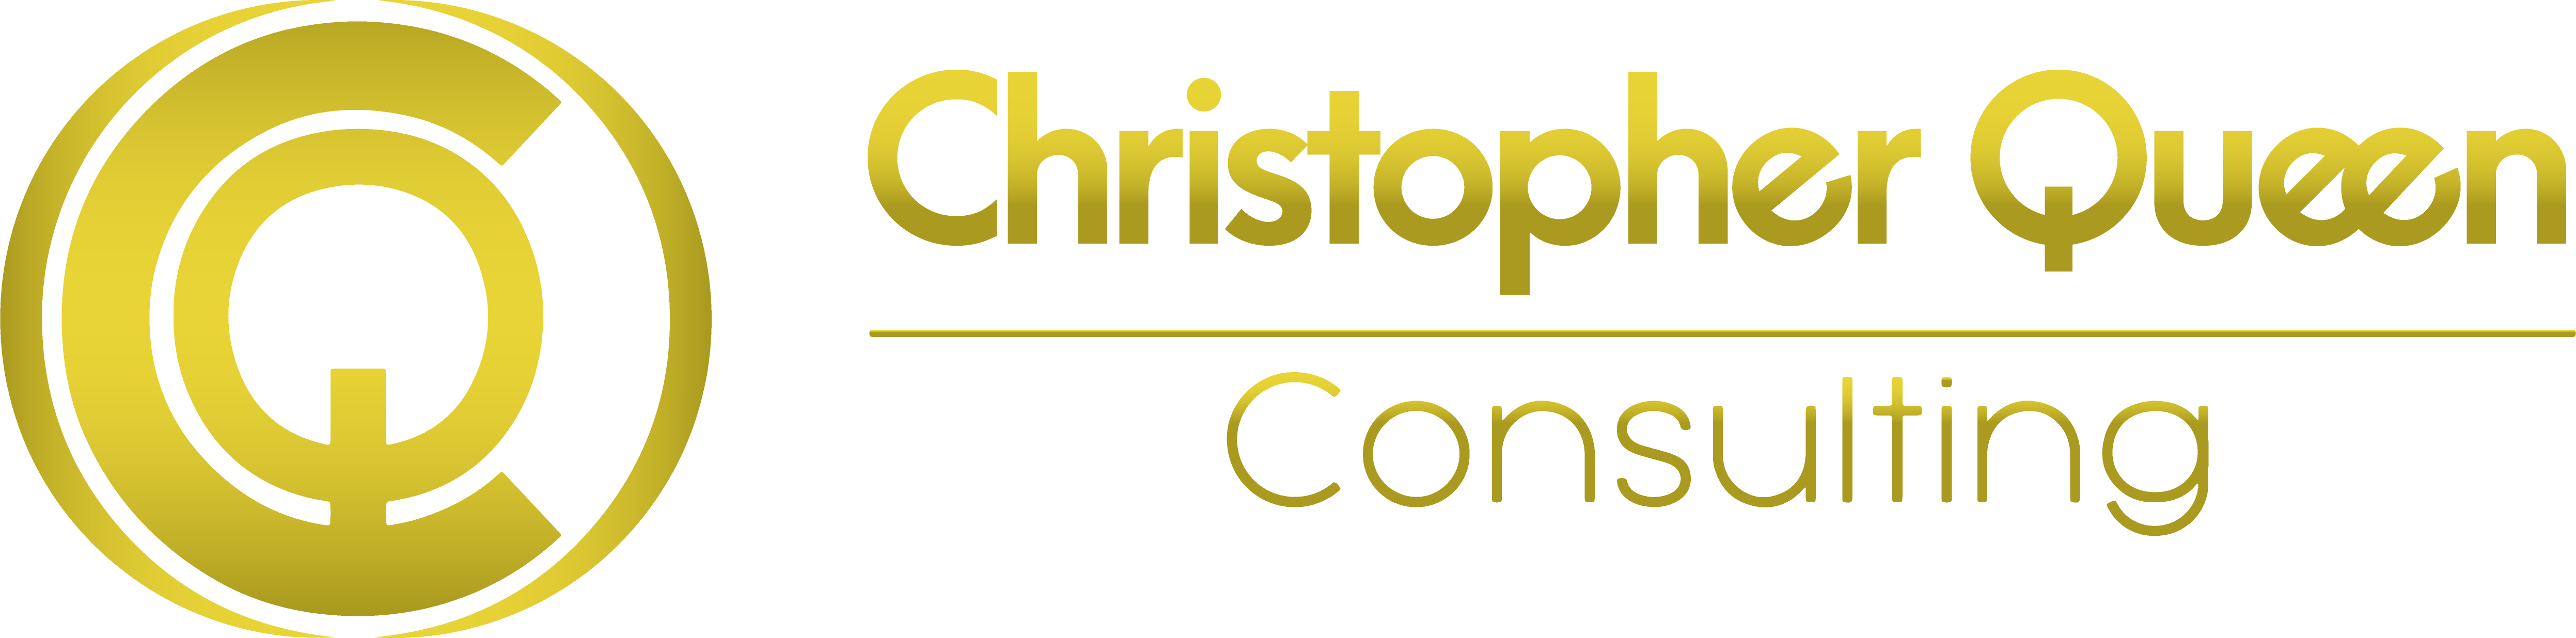 Christopher Queen Consulting